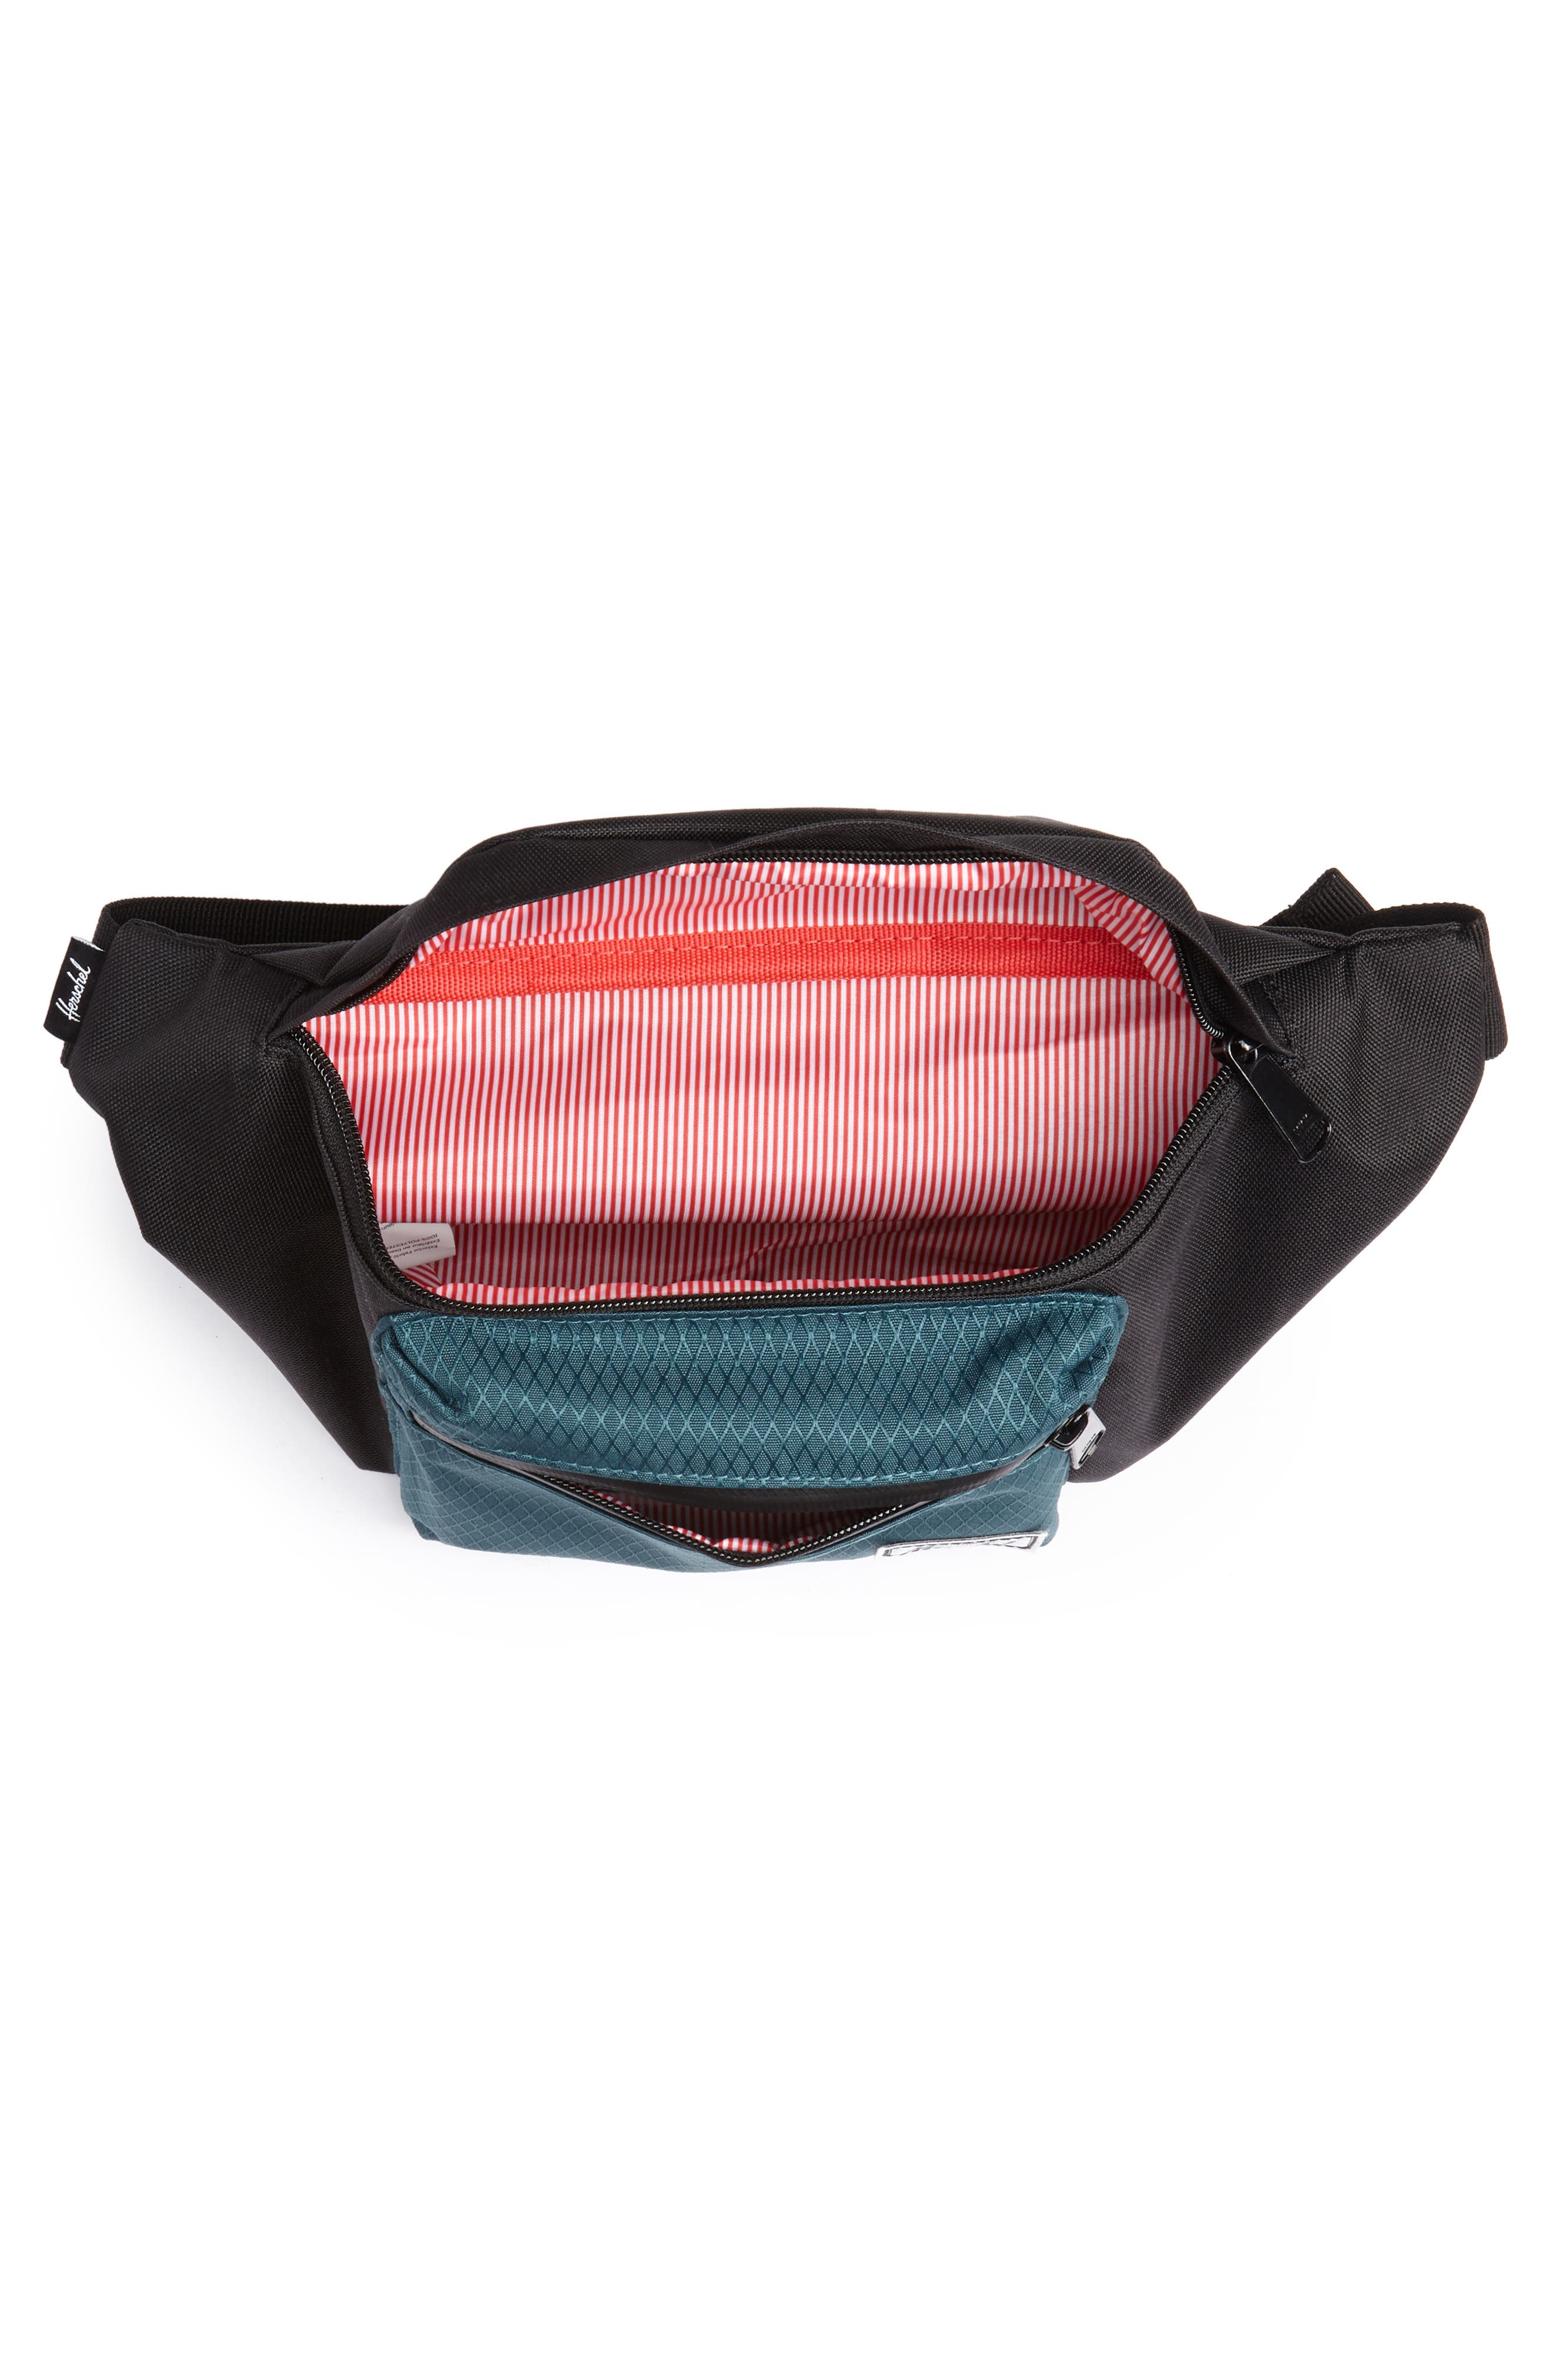 'Seventeen' Belt Bag,                             Alternate thumbnail 5, color,                             BLACK/ DEEP TEAL